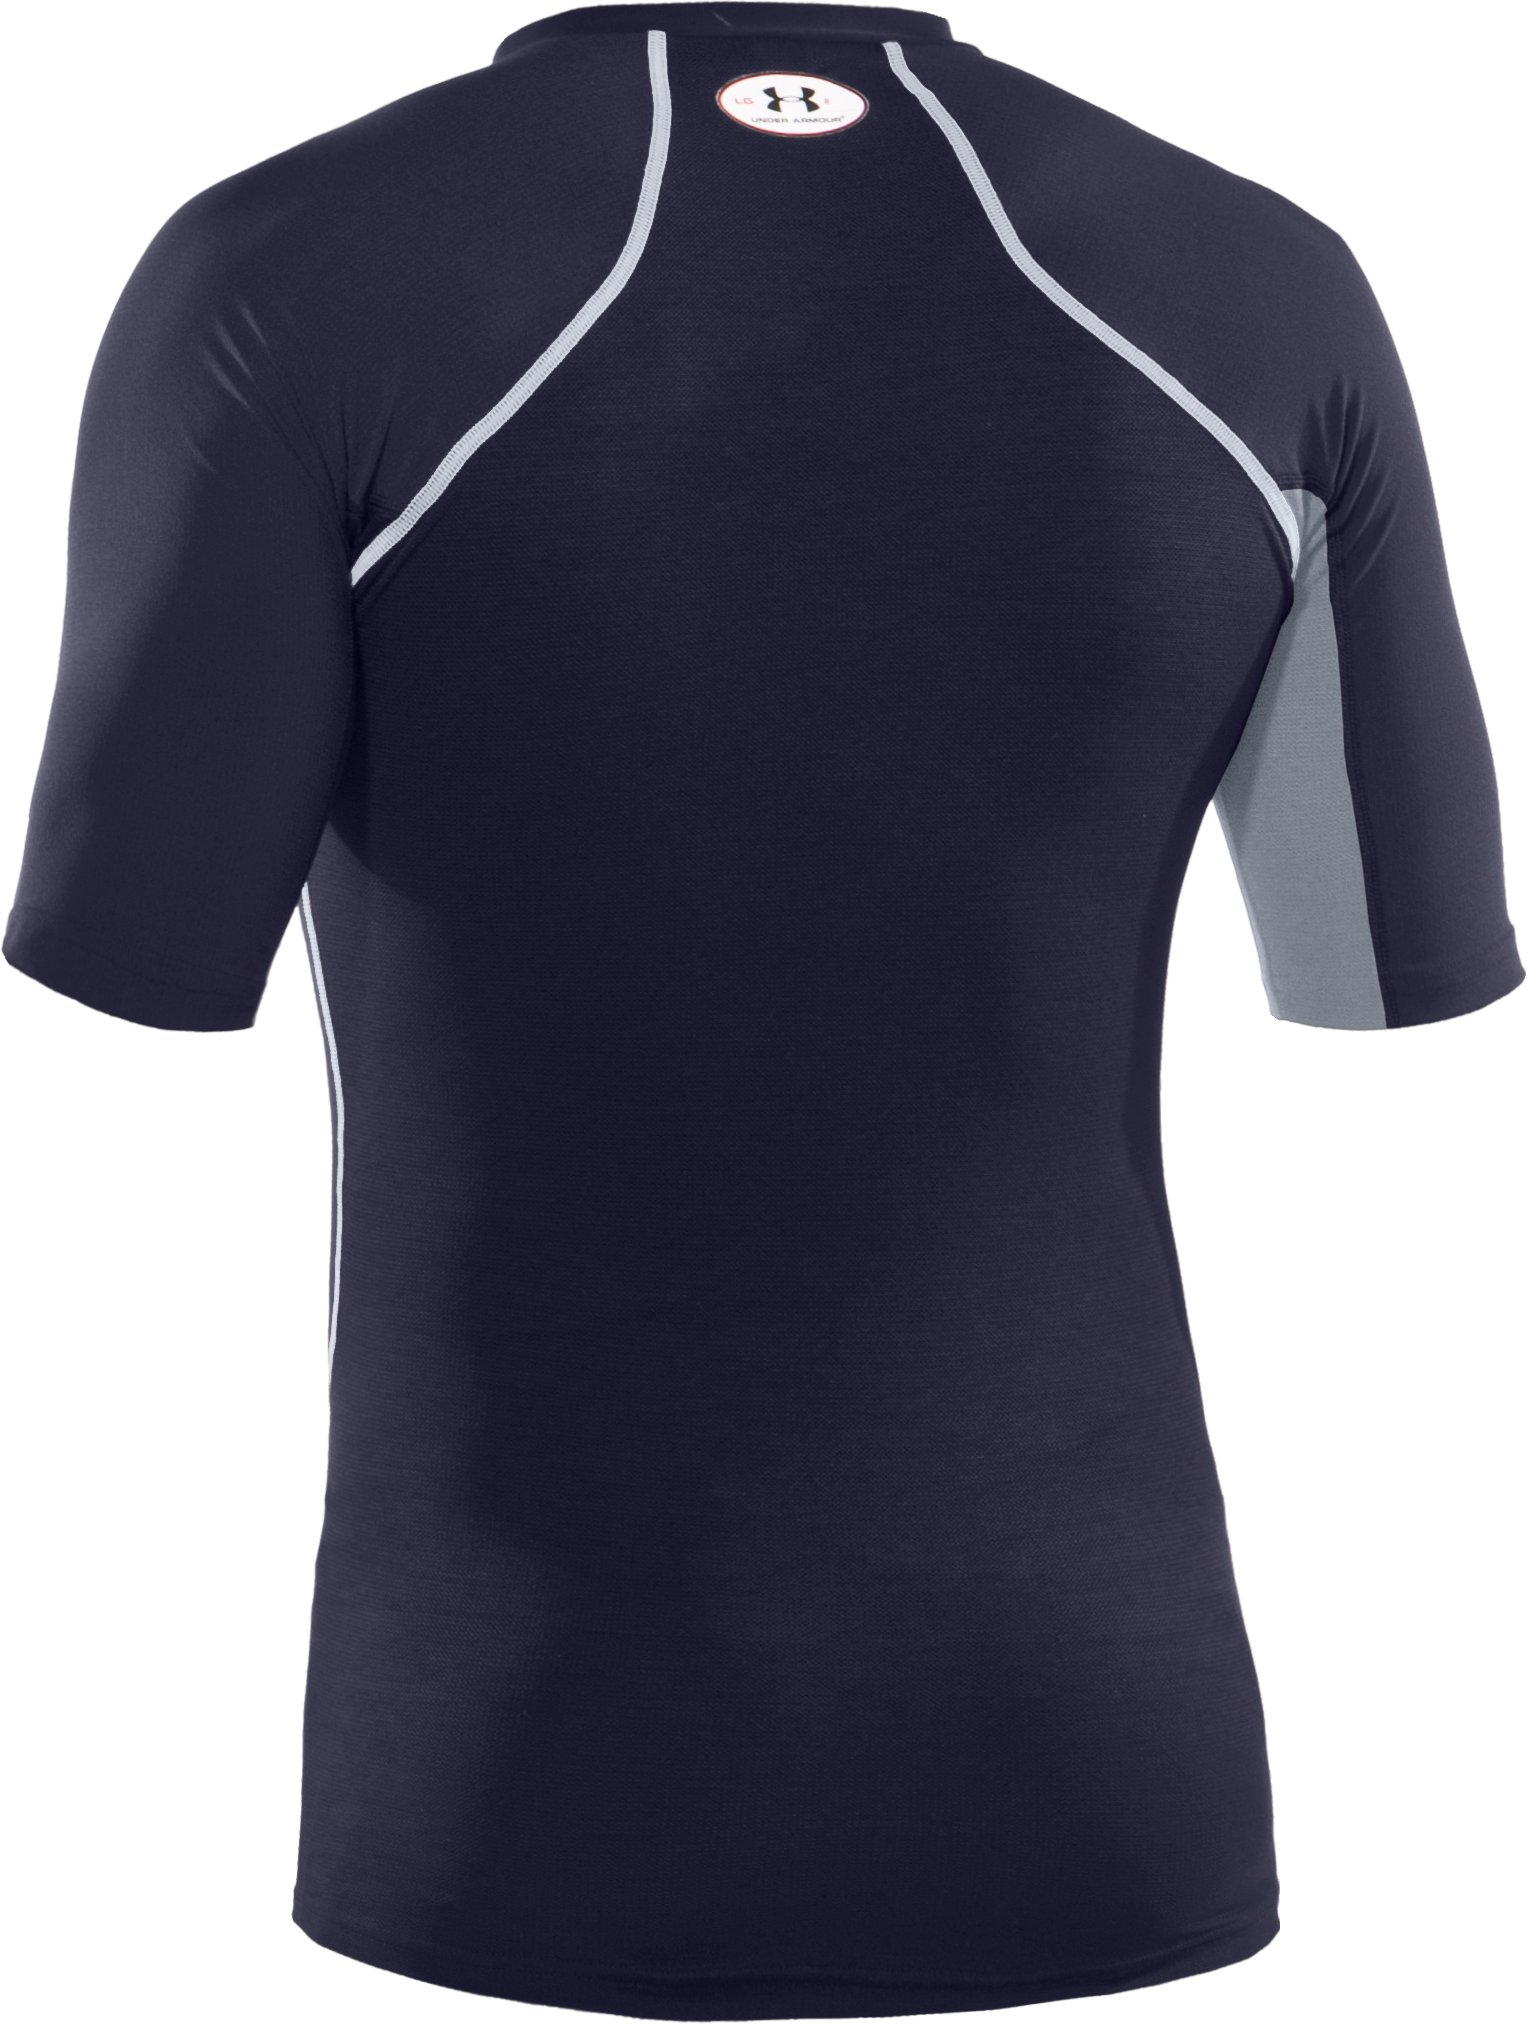 Men's HeatGear® Stretch Woven Short Sleeve, Midnight Navy